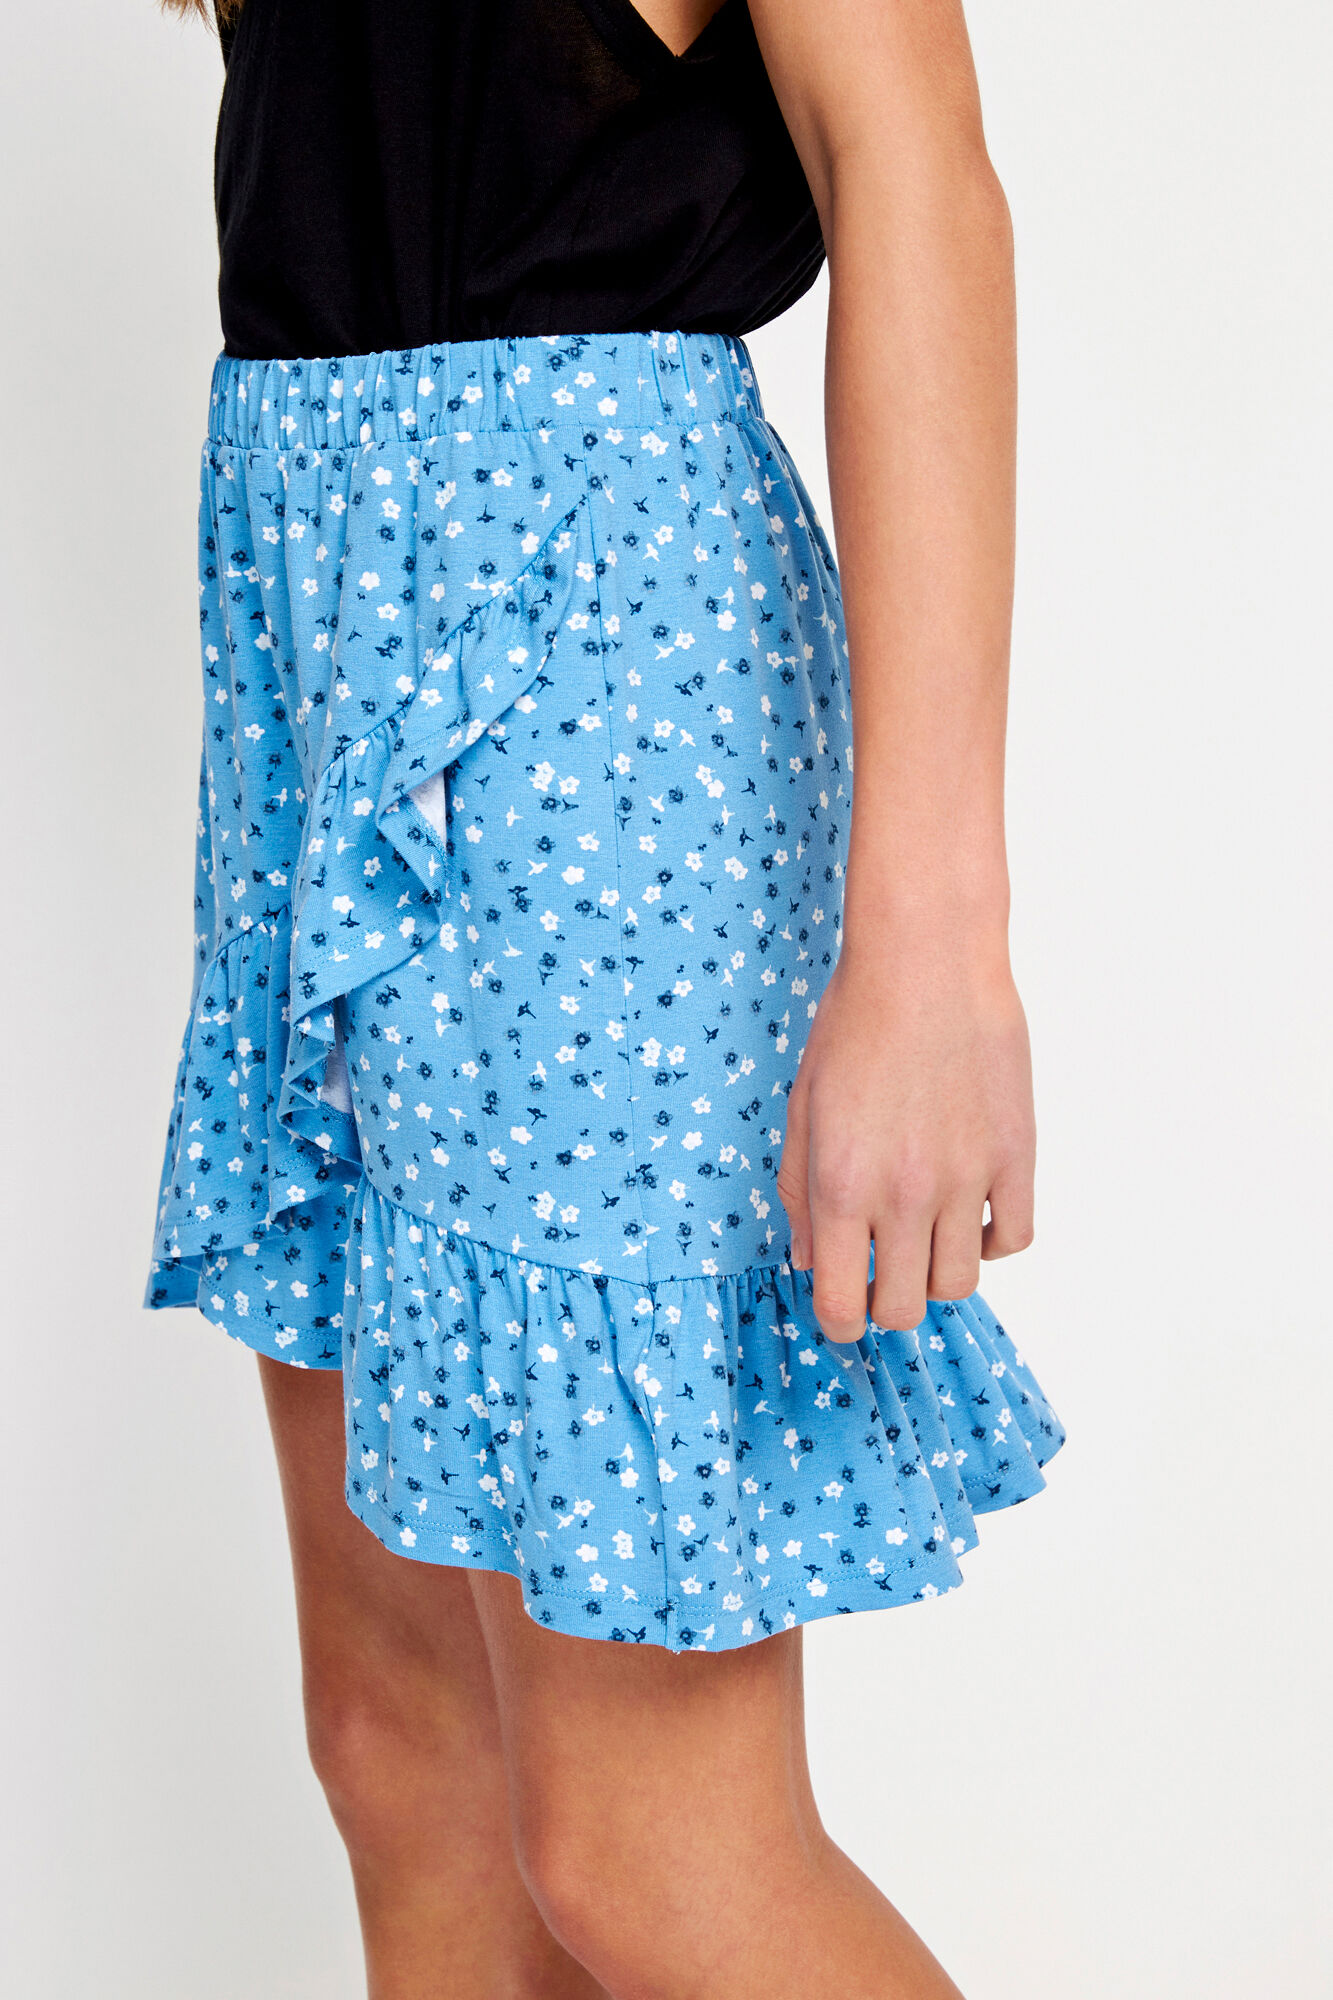 ENLIZARD SKIRT AOP 5890